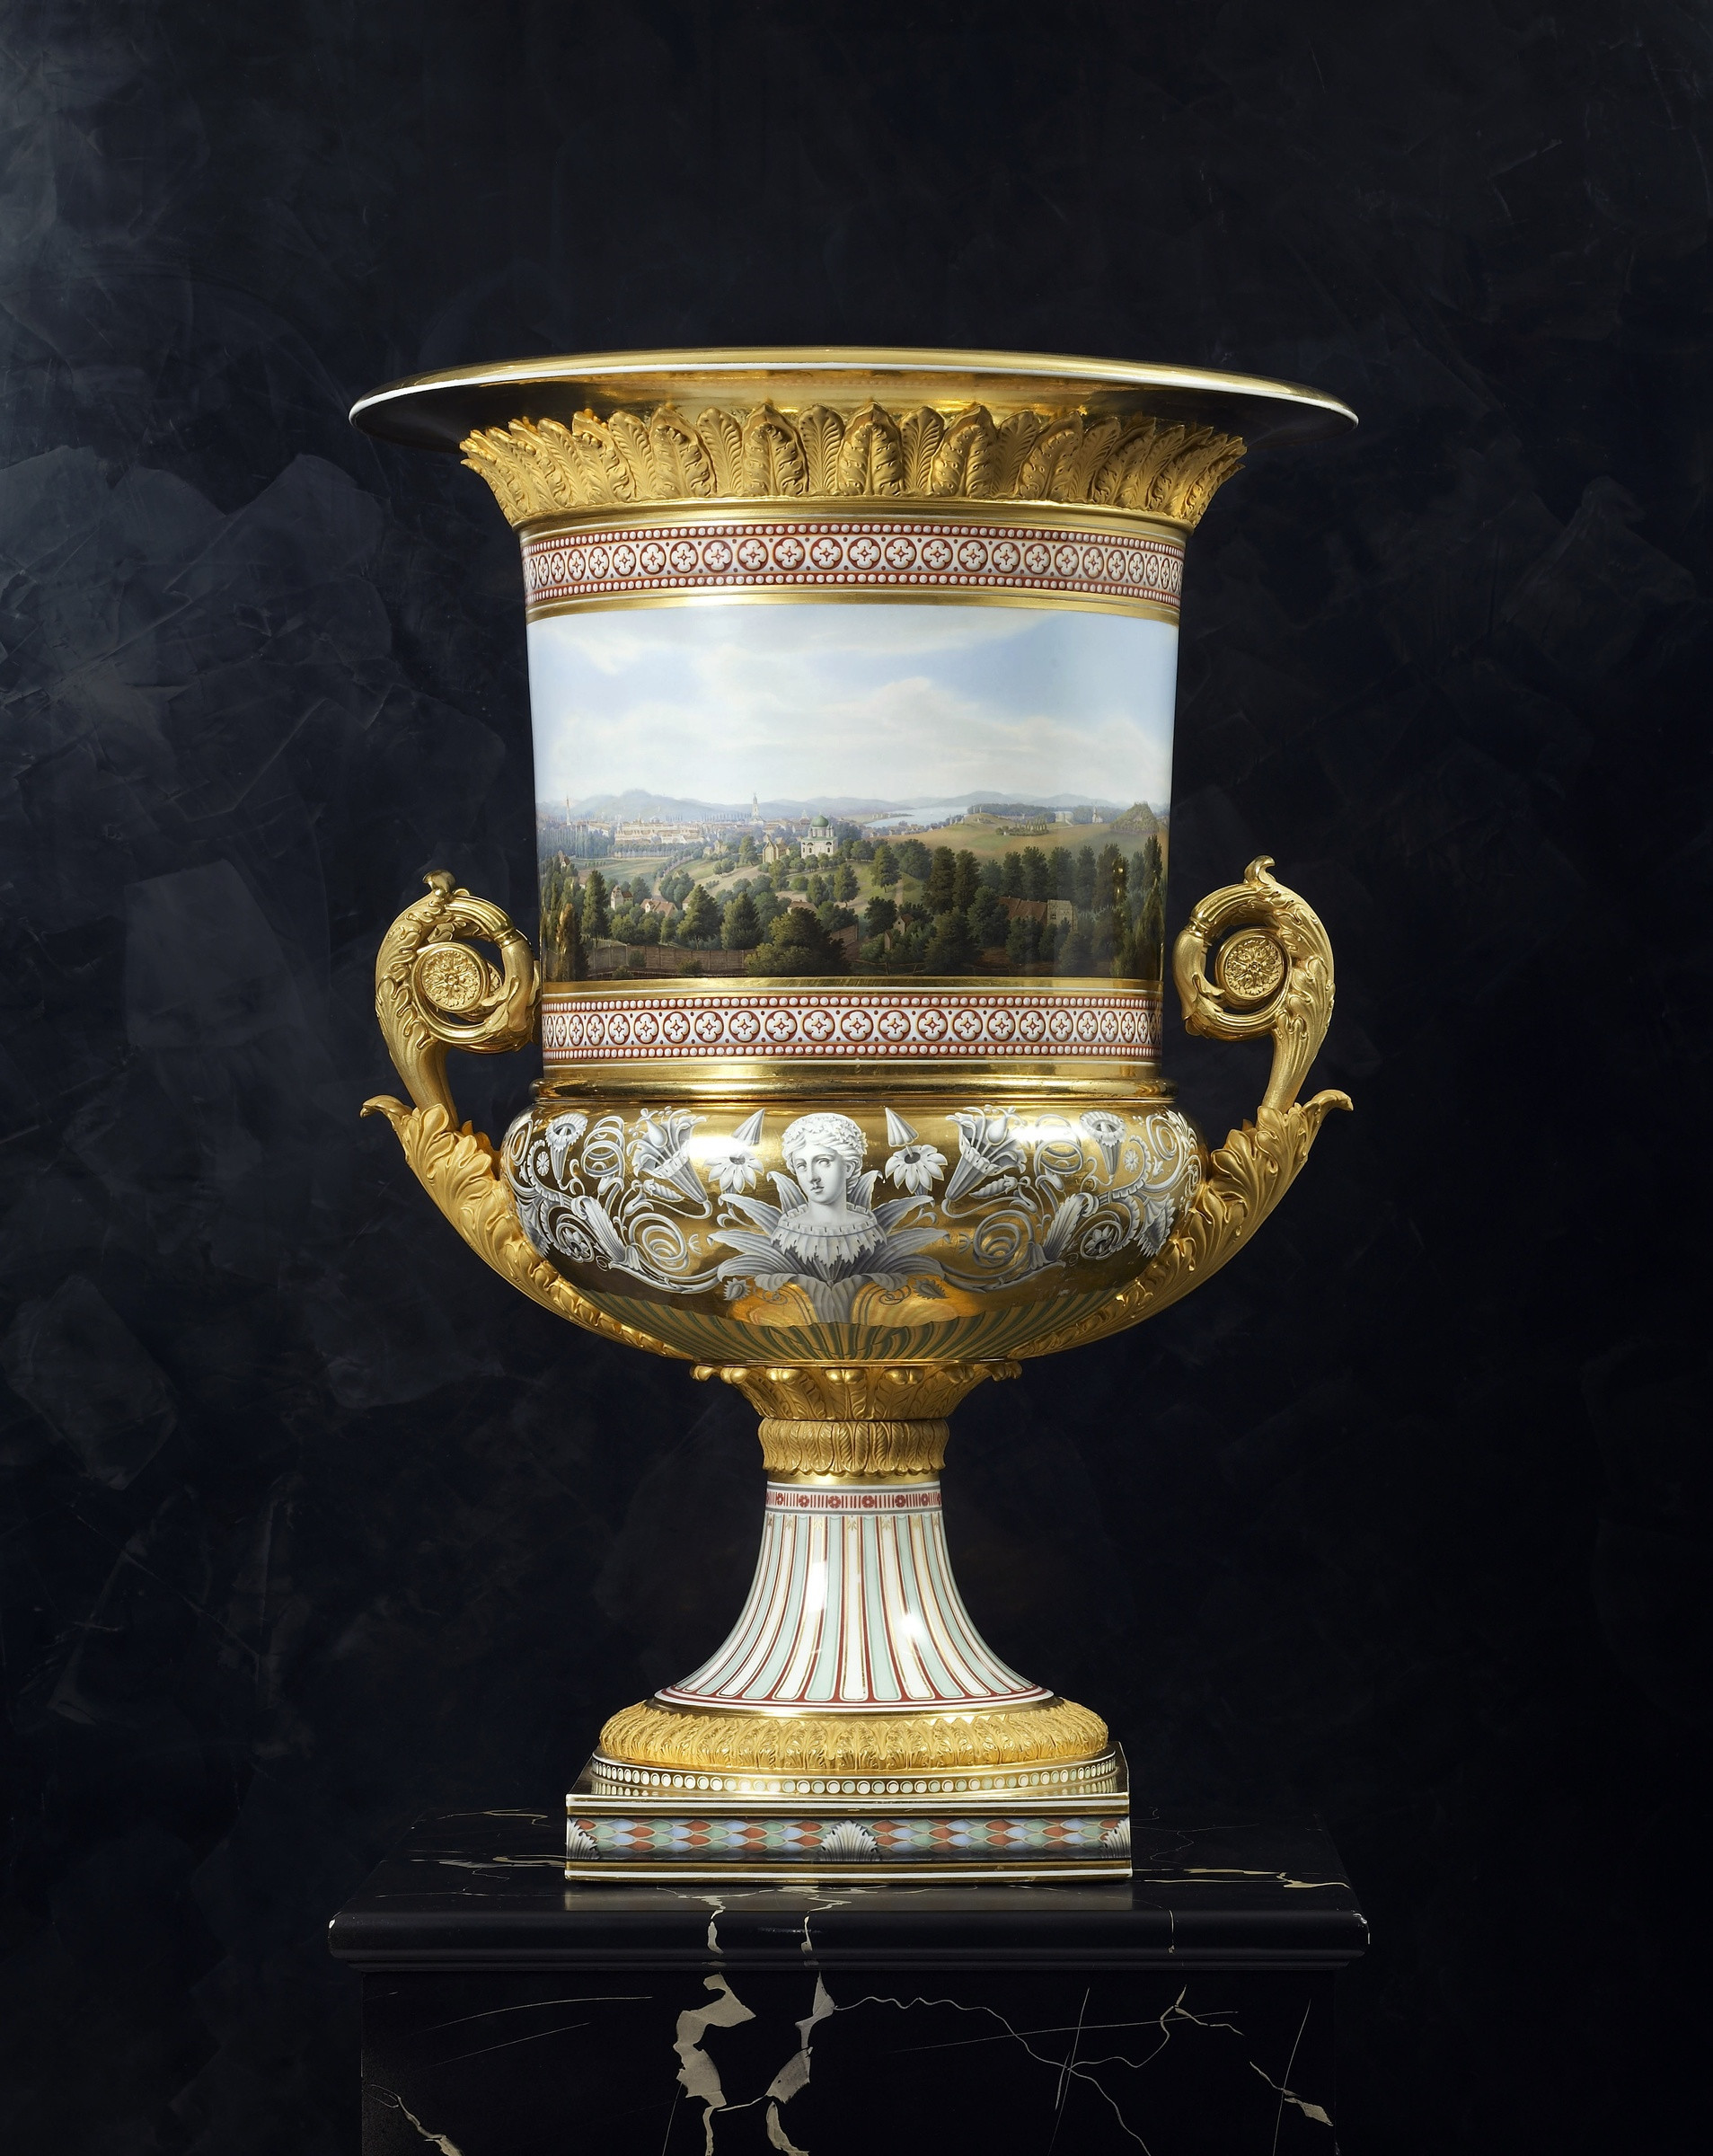 3 foot vase of k p m kac2b6nigliche porzellan manufaktur berlin a classical medici within a classical medici vase made by the royal berlin porcelain manufactory